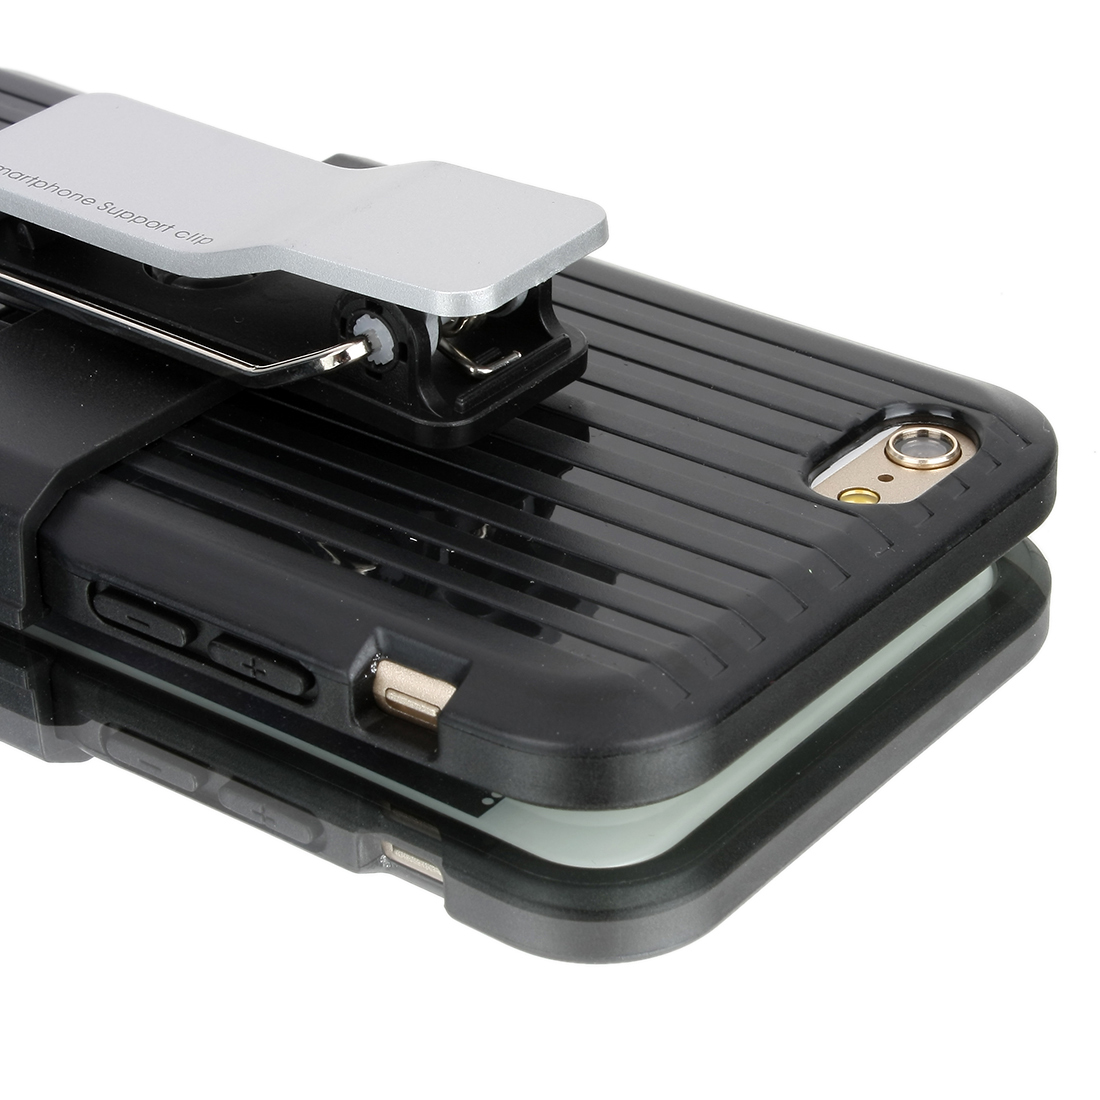 Rugged Hard Case Cover Belt Clip Holster Stand for Apple iPhone 6 4.7 inch Black